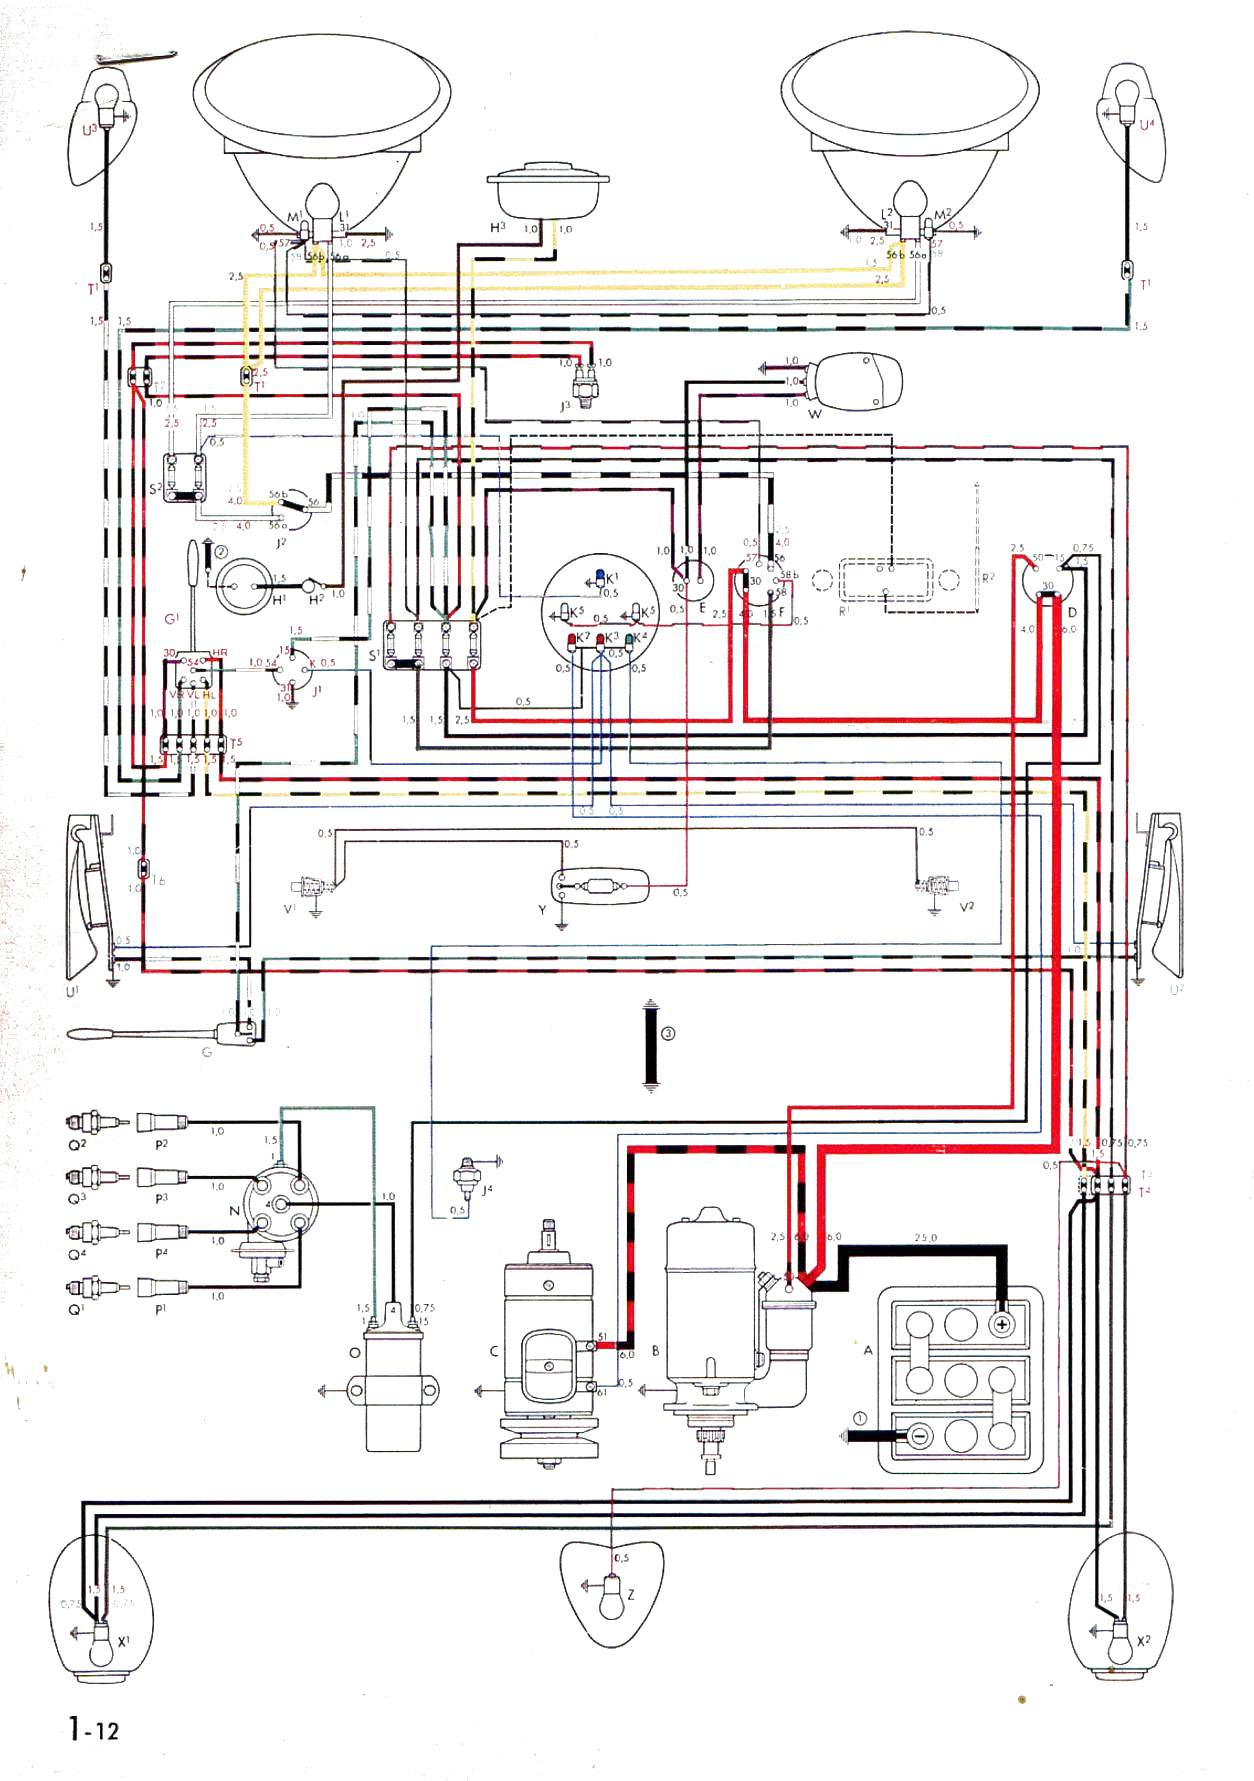 Vw Bus And Other Wiring Diagrams 1978 Datsun Pickup Diagram Bug